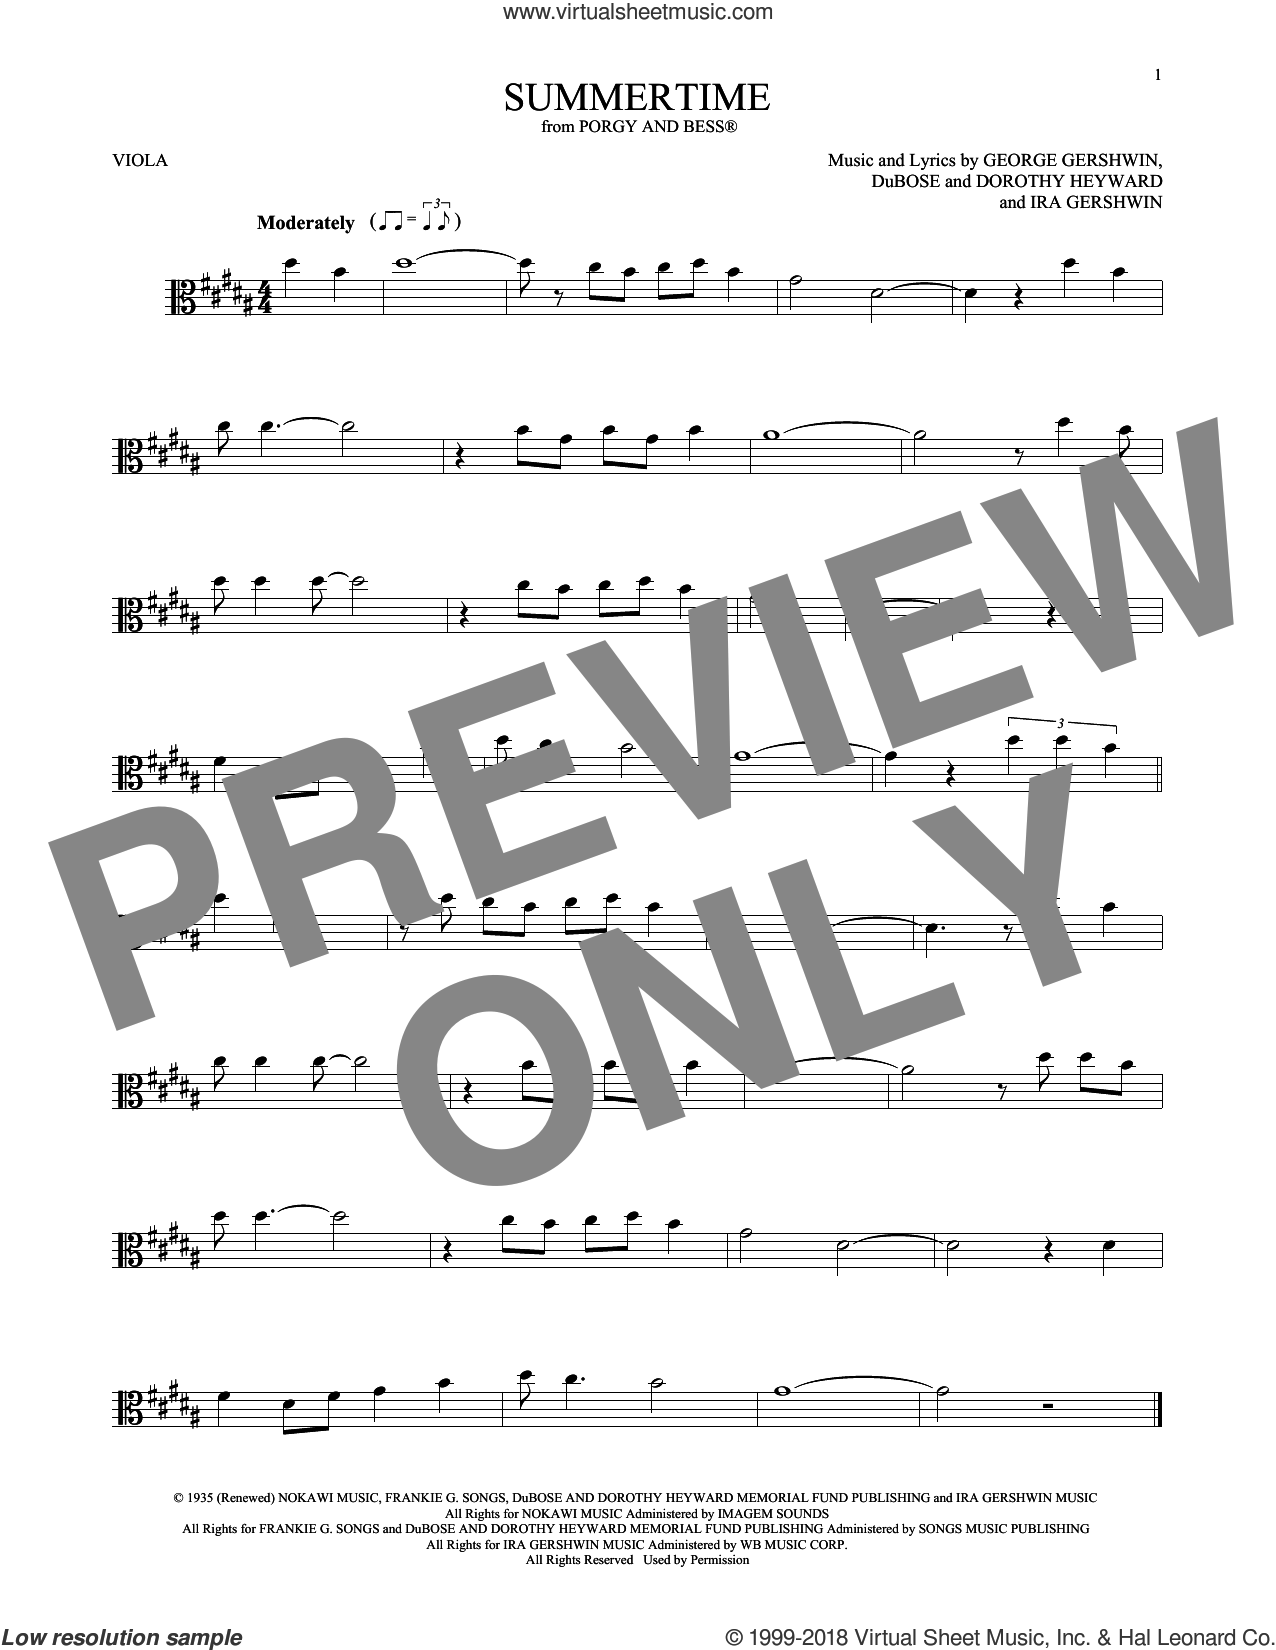 Summertime sheet music for viola solo by George Gershwin, Dorothy Heyward, DuBose Heyward and Ira Gershwin, intermediate skill level